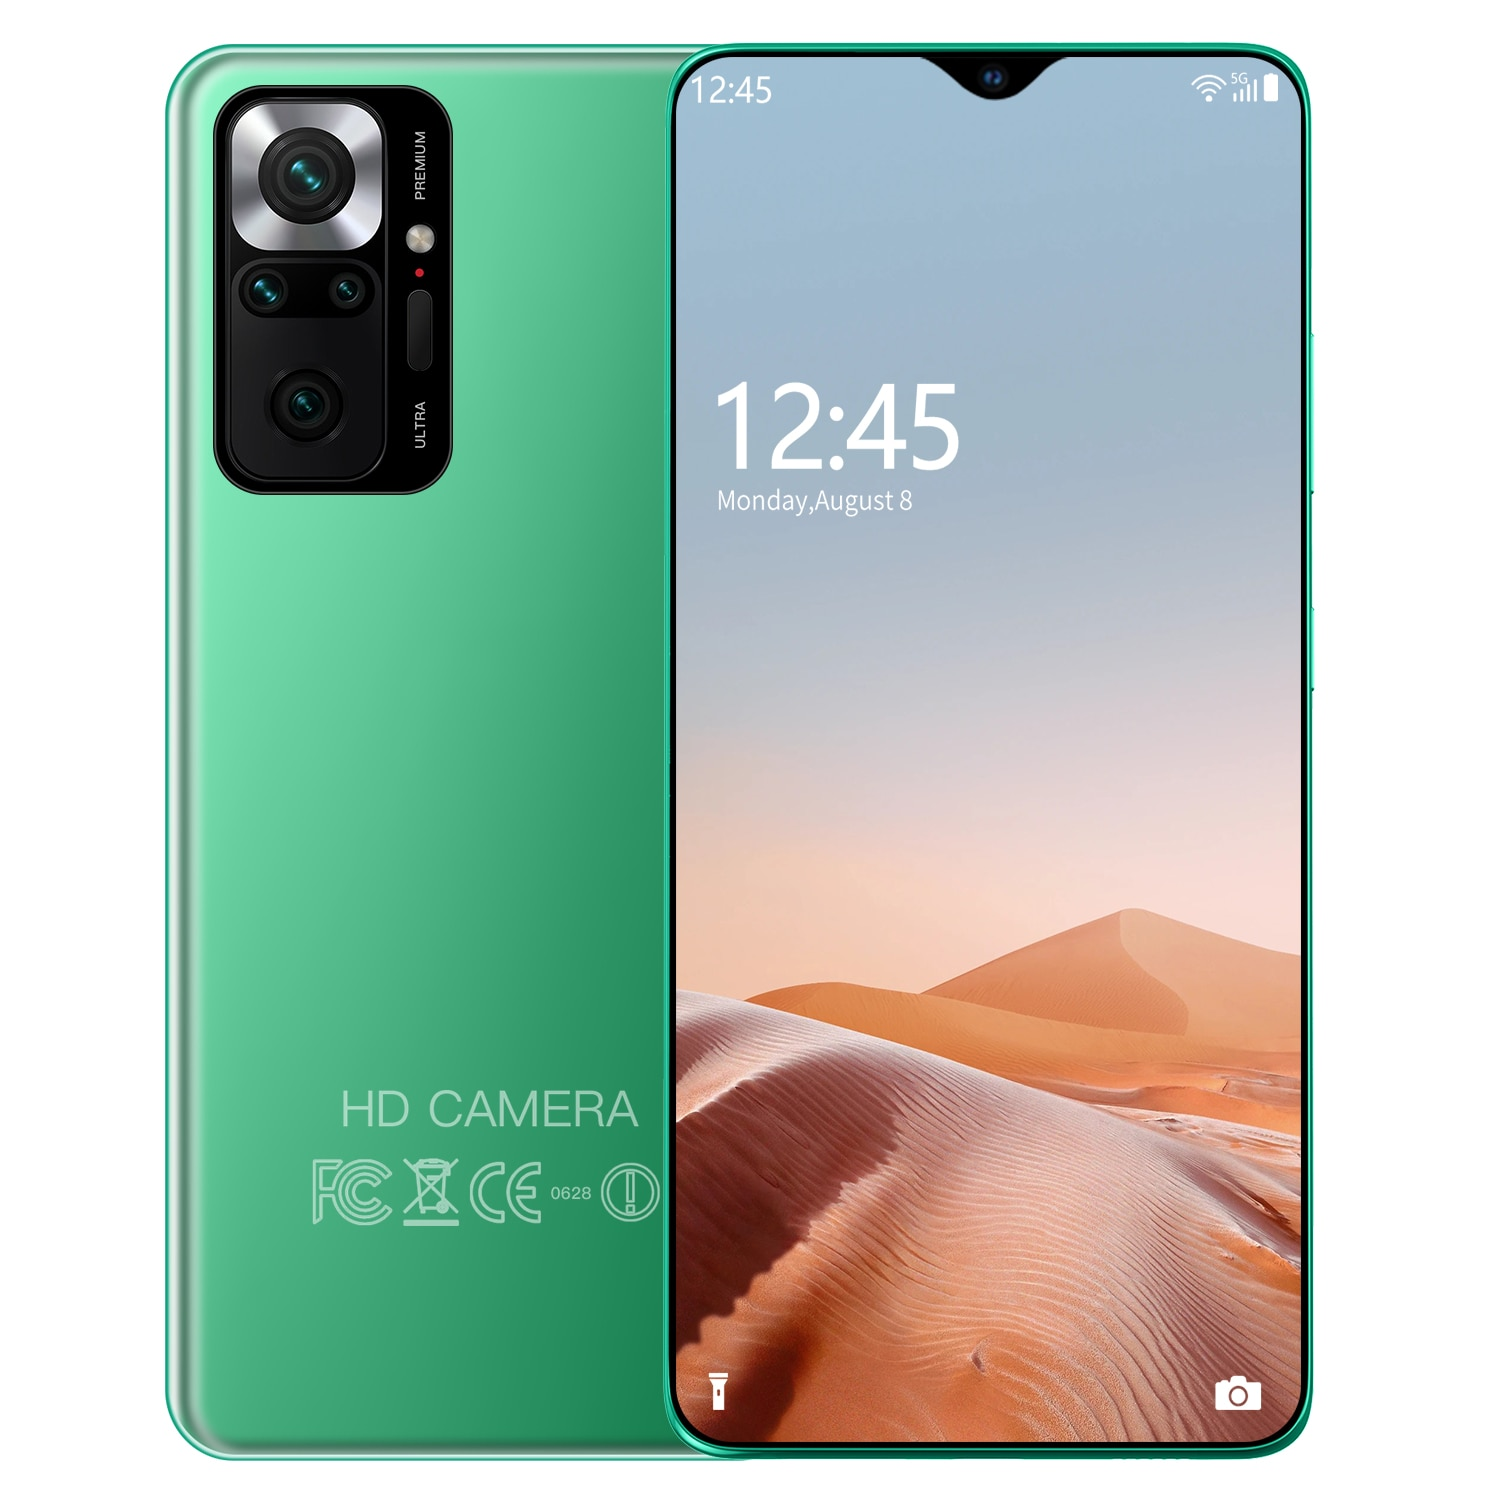 Note 10 Pro SmartPhone Global Version Android Mobile Phones 12GB+512GB Phone CellPhones 6.7 Inch 4G/5G Smartphoens Quad Camera enlarge